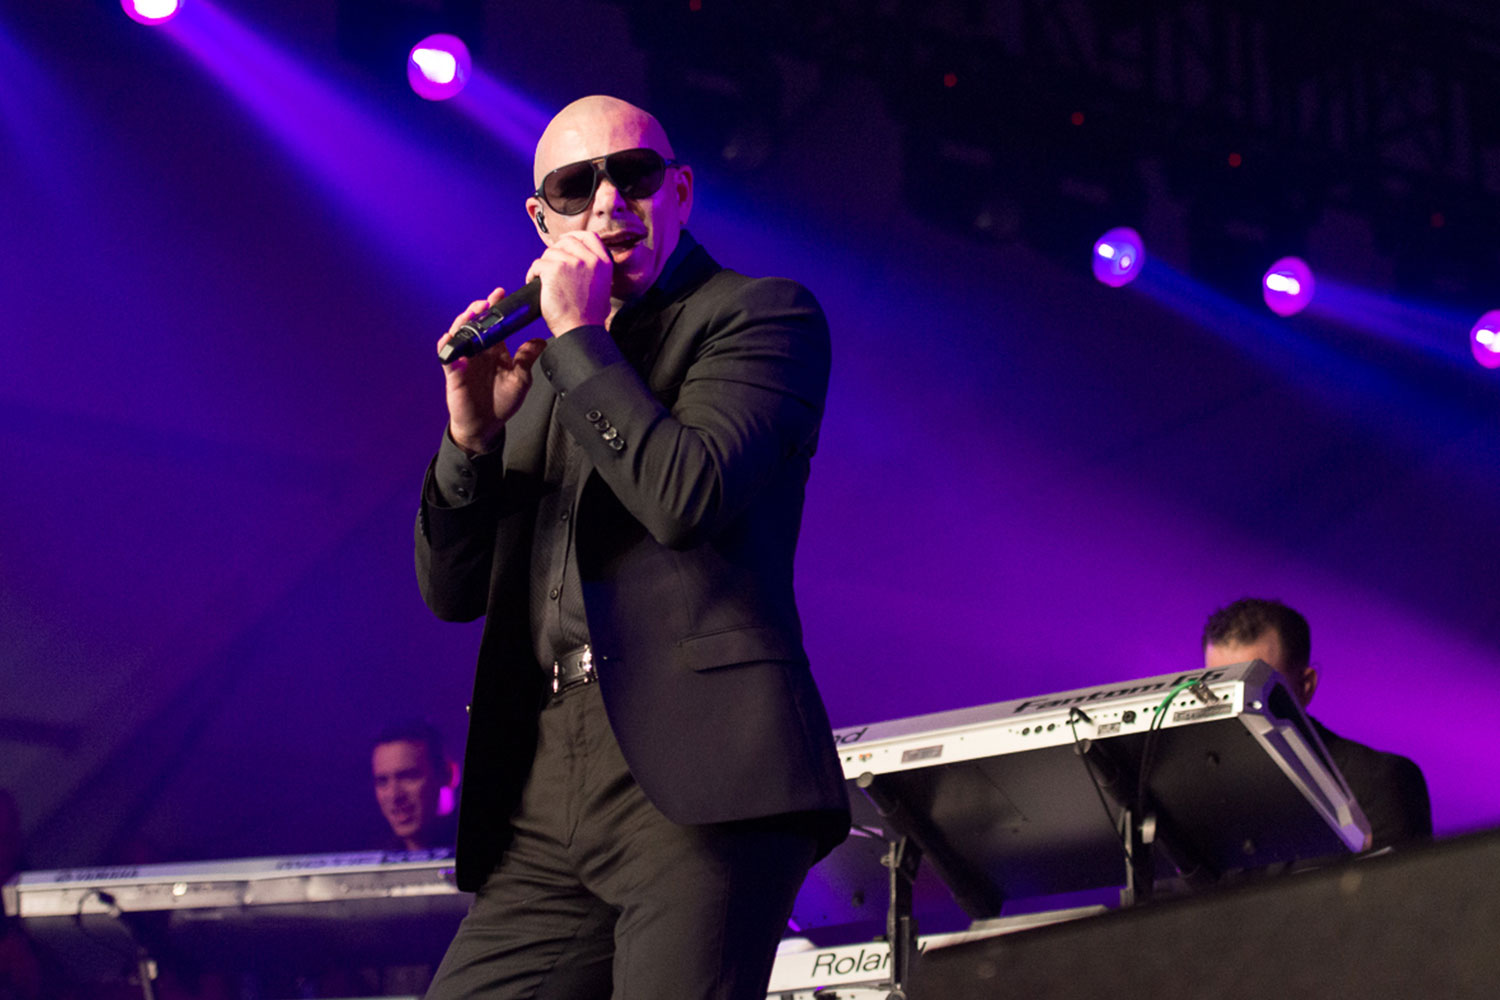 toast-pitbull-bug-light-entertainment-production-planning-10twelve.jpg